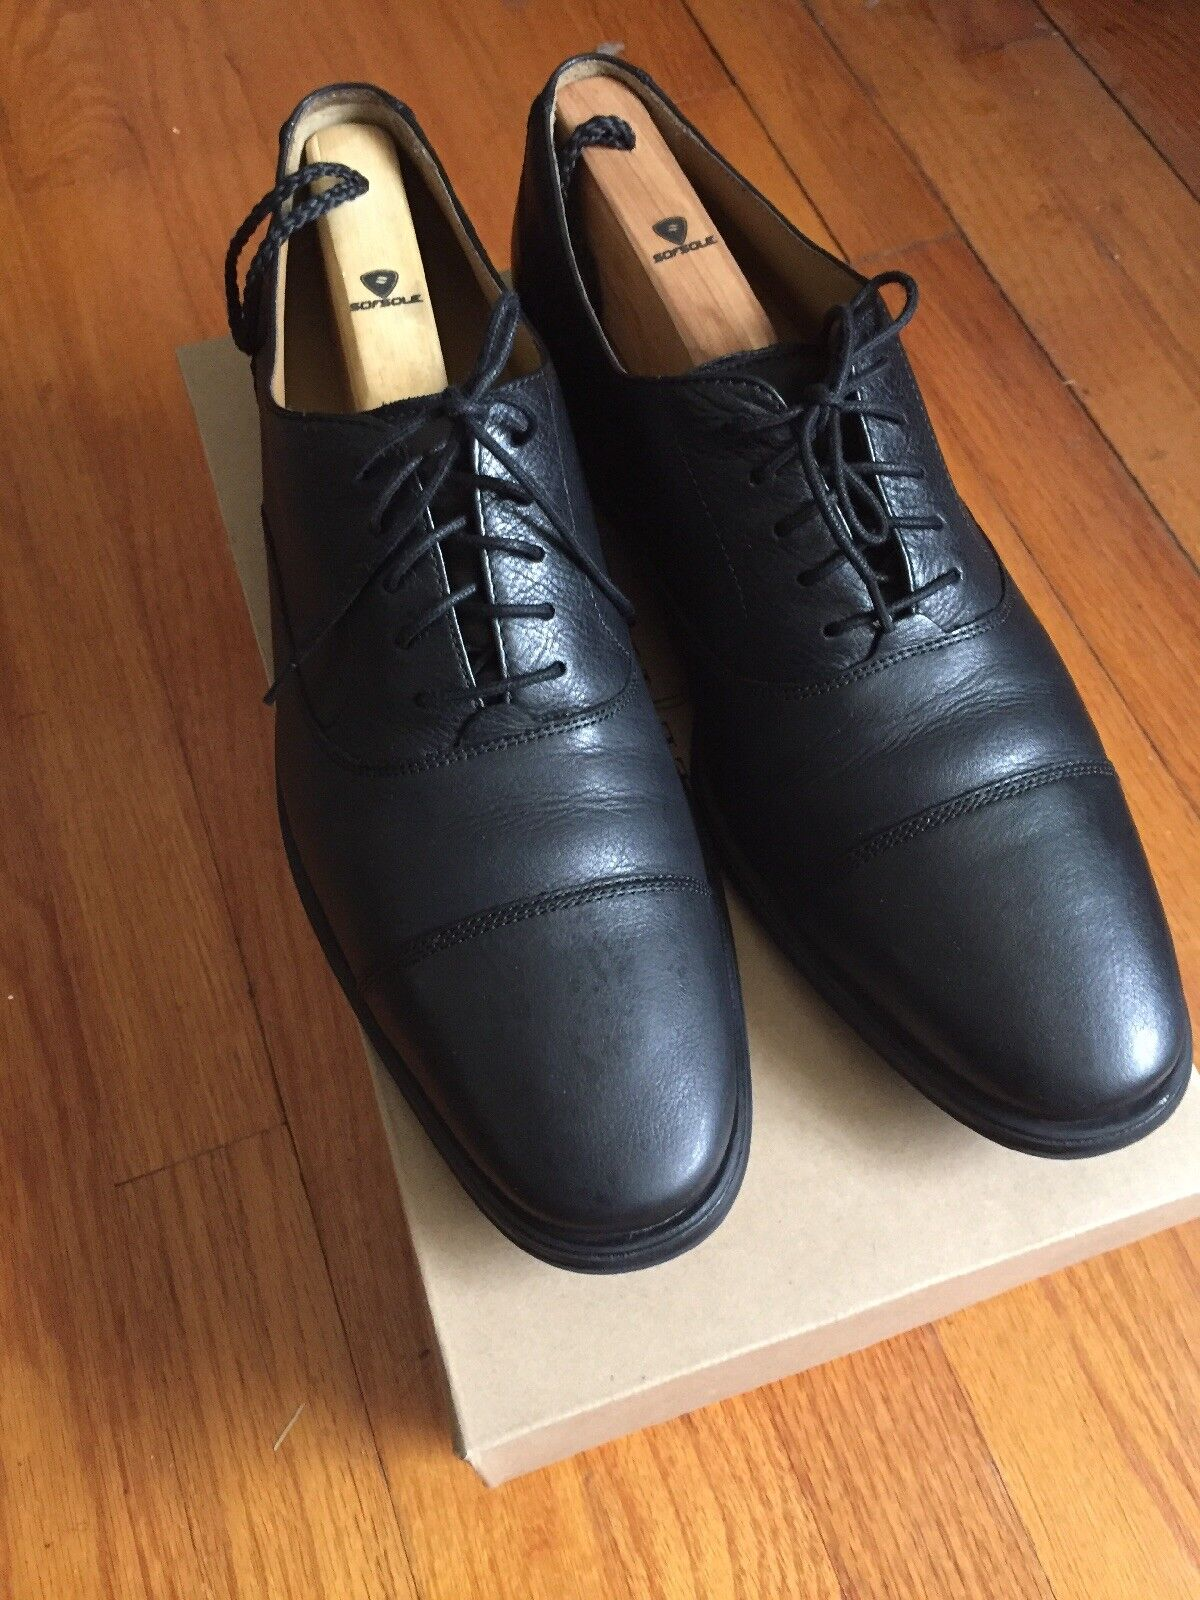 COLE TOE HAAN MEN'S ADAMS CAP TOE COLE II OXFORD (C12324) BLACK 10 MEDIUM $200 b75159